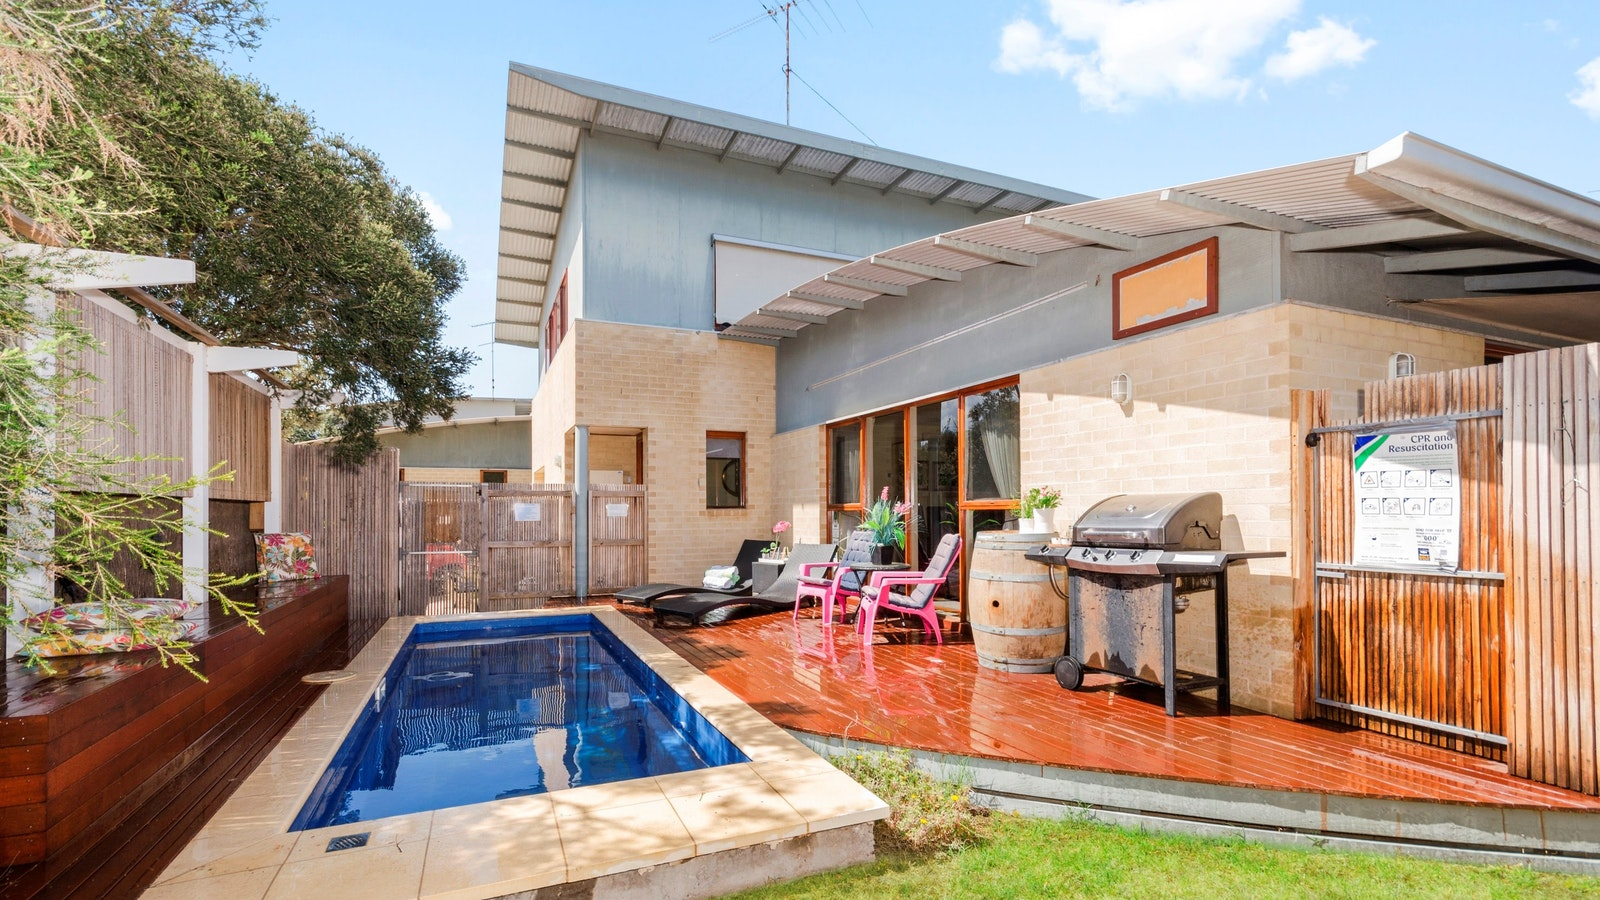 King Tide Townhouse. 200 metres to main Ocean Grove surf beach. Private pool.